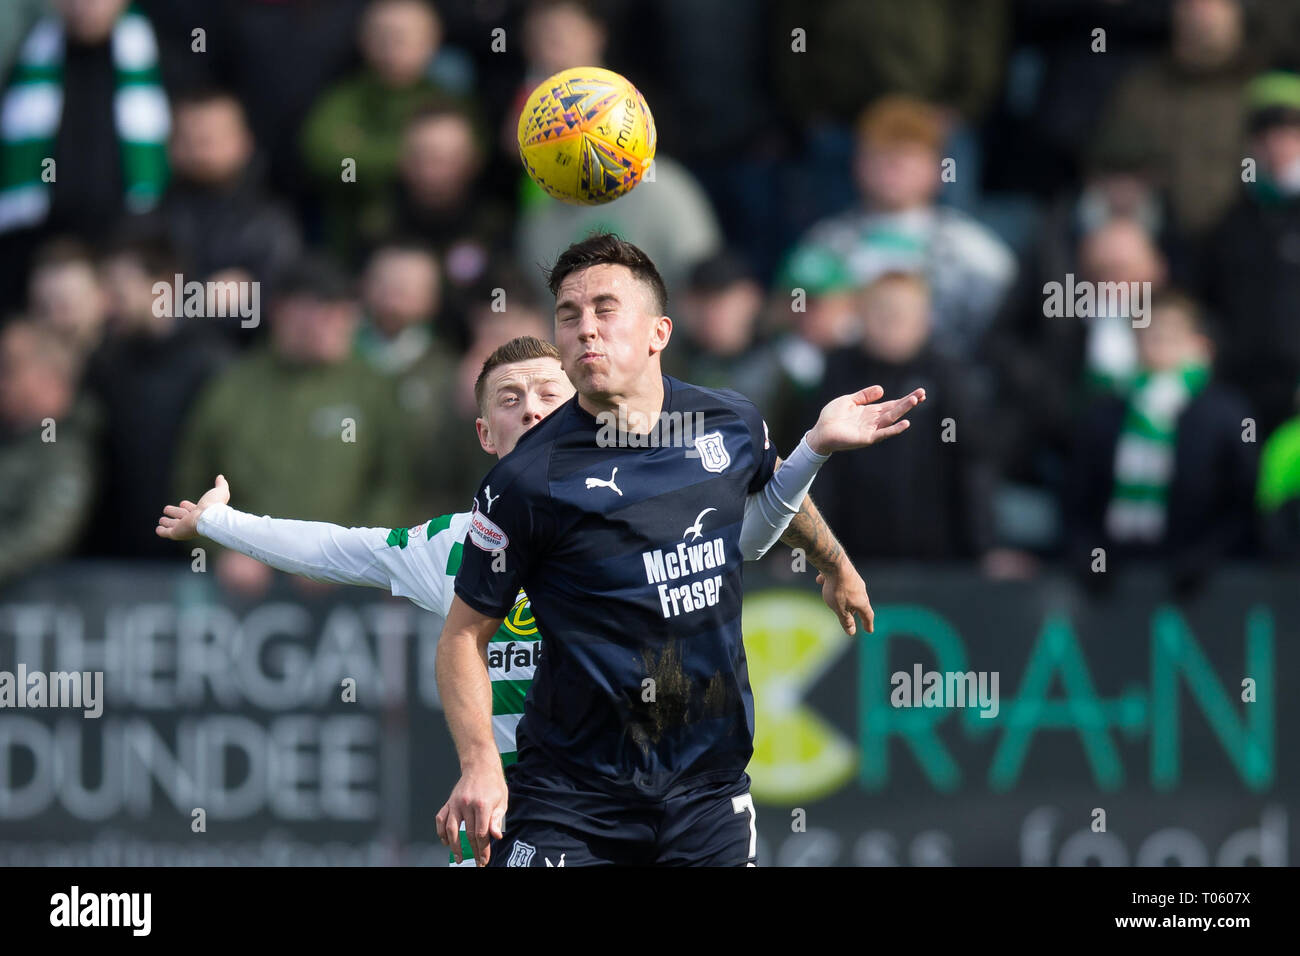 Dundee, UK. 17th Mar, 2019. Ladbrokes Premiership football, Dundee versus Celtic; John O'Sullivan of Dundee competes in the air with Callum McGregor of Celtic Credit: Action Plus Sports/Alamy Live News - Stock Image